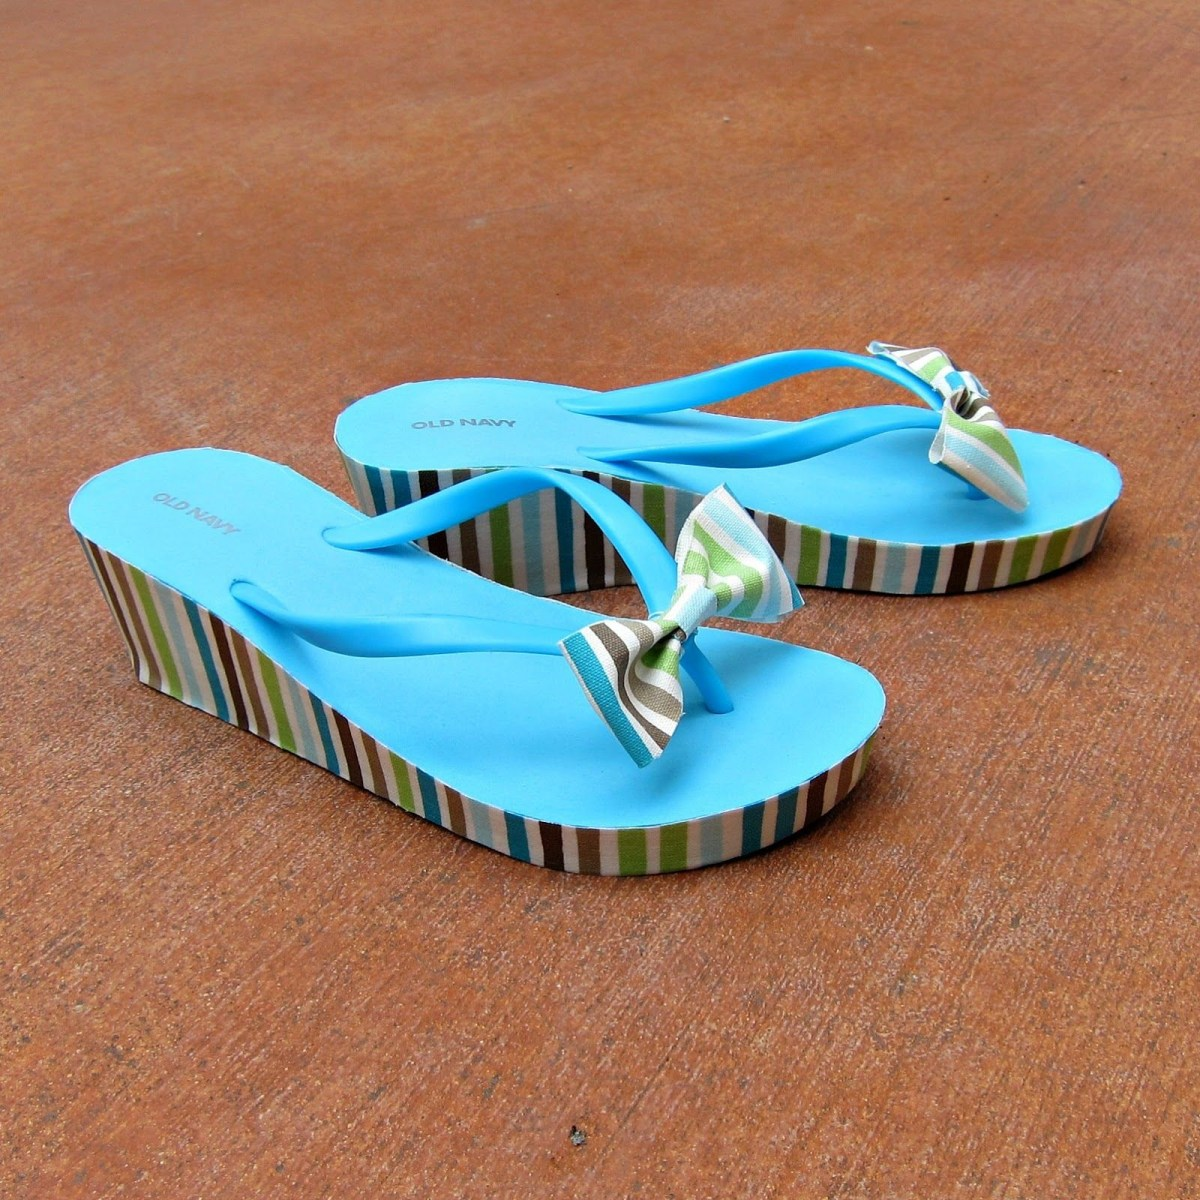 Mod podge soled flip flops DIY Picturesque Flip Flops Ideas That Are Great For Indoor Or Beach Day